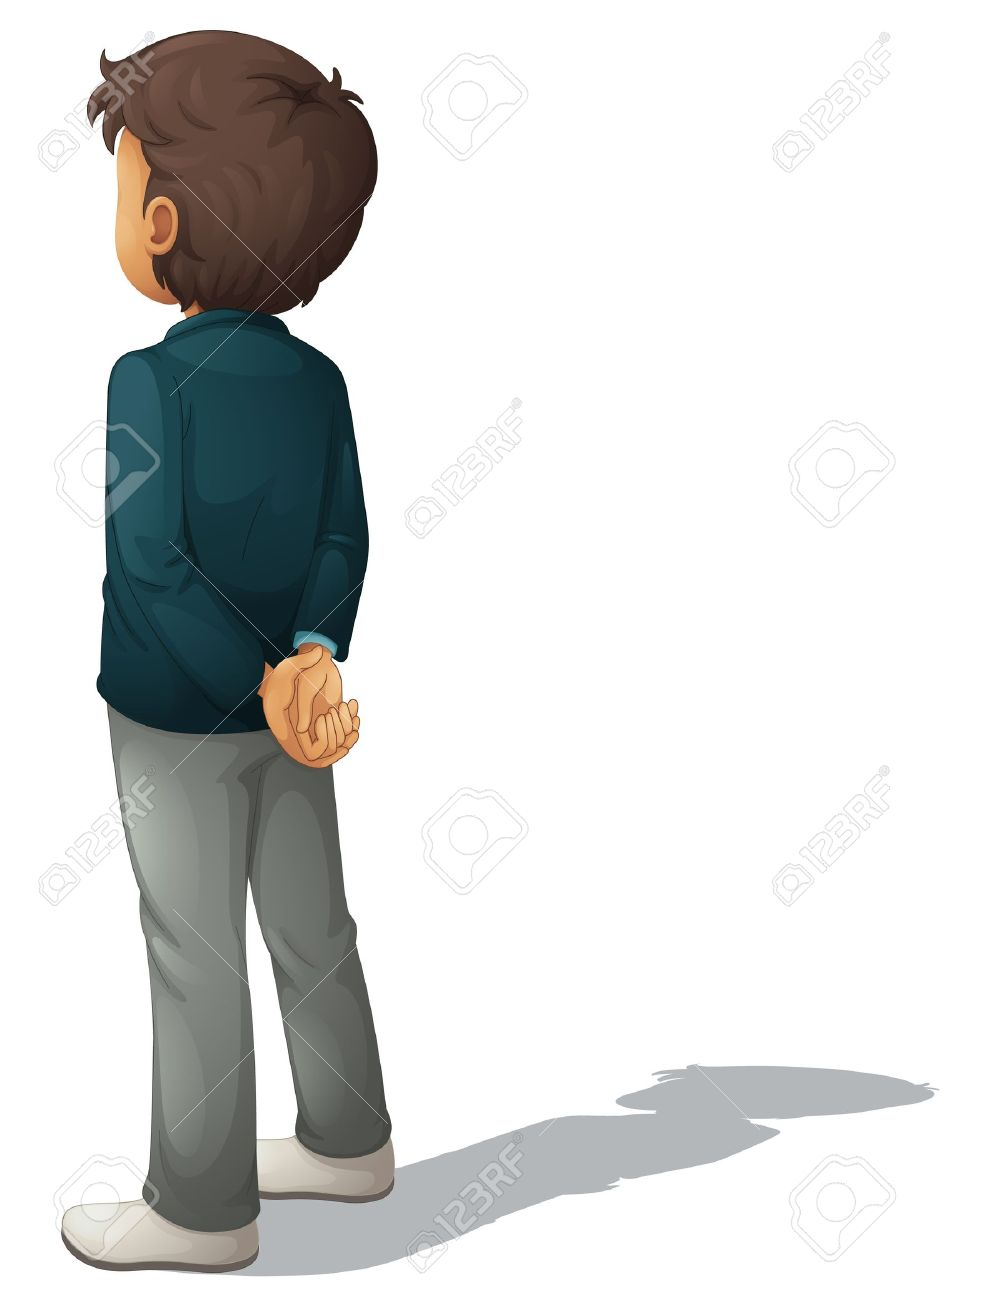 Boy turning to man clipart png royalty free download 1,989 Turned Stock Vector Illustration And Royalty Free Turned Clipart png royalty free download